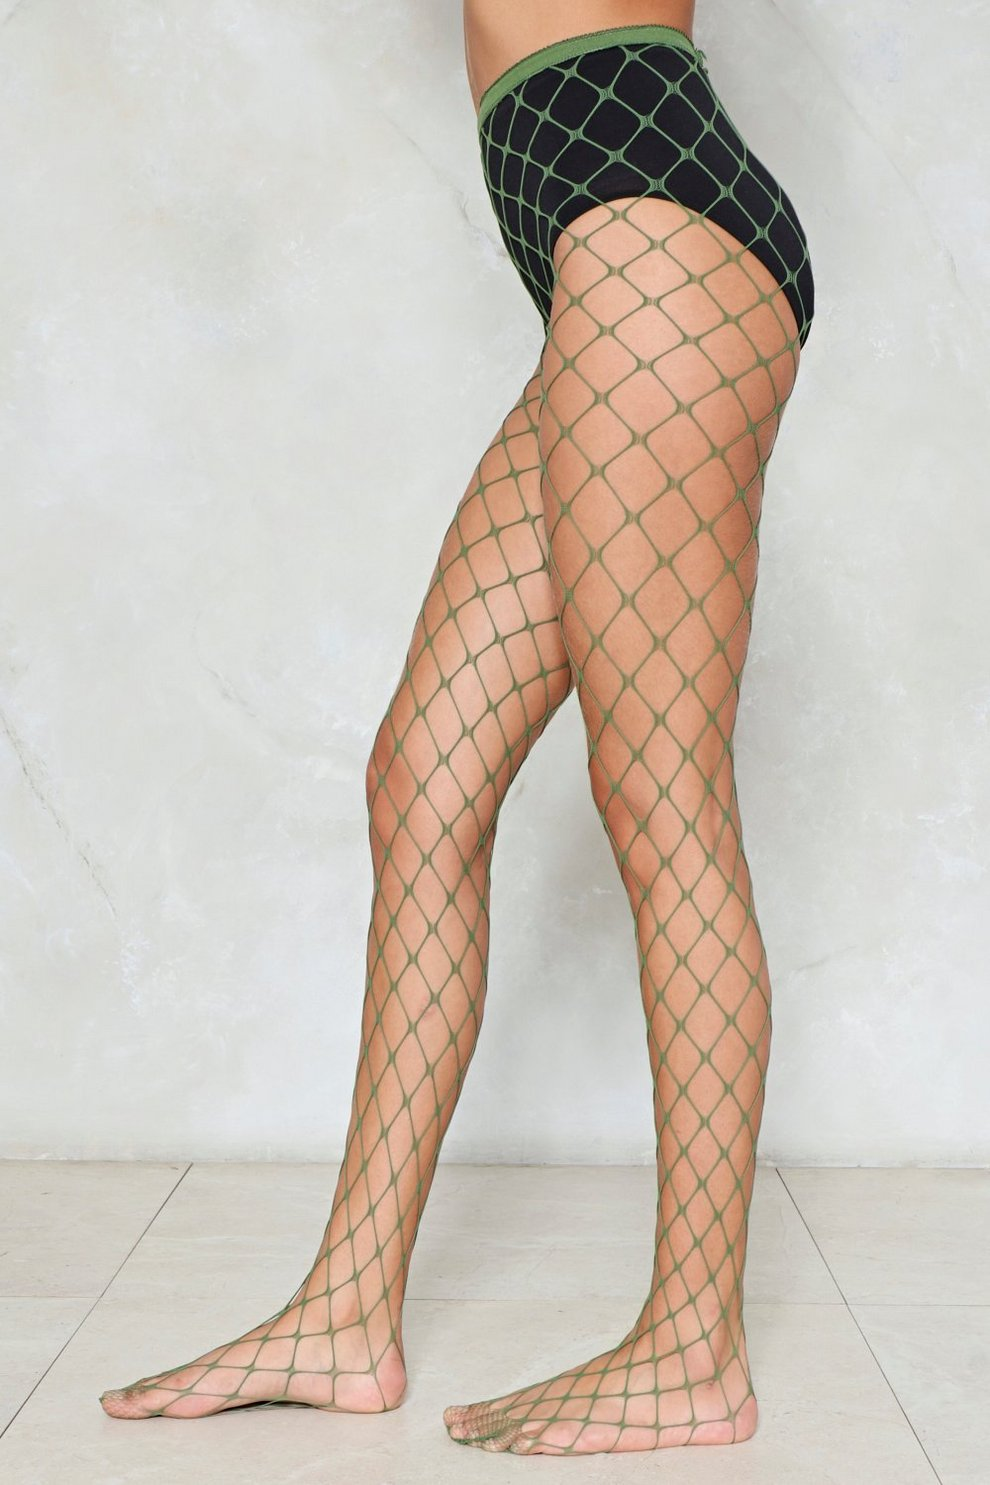 3948b720683a3 Net Results Fishnet Tights   Shop Clothes at Nasty Gal!